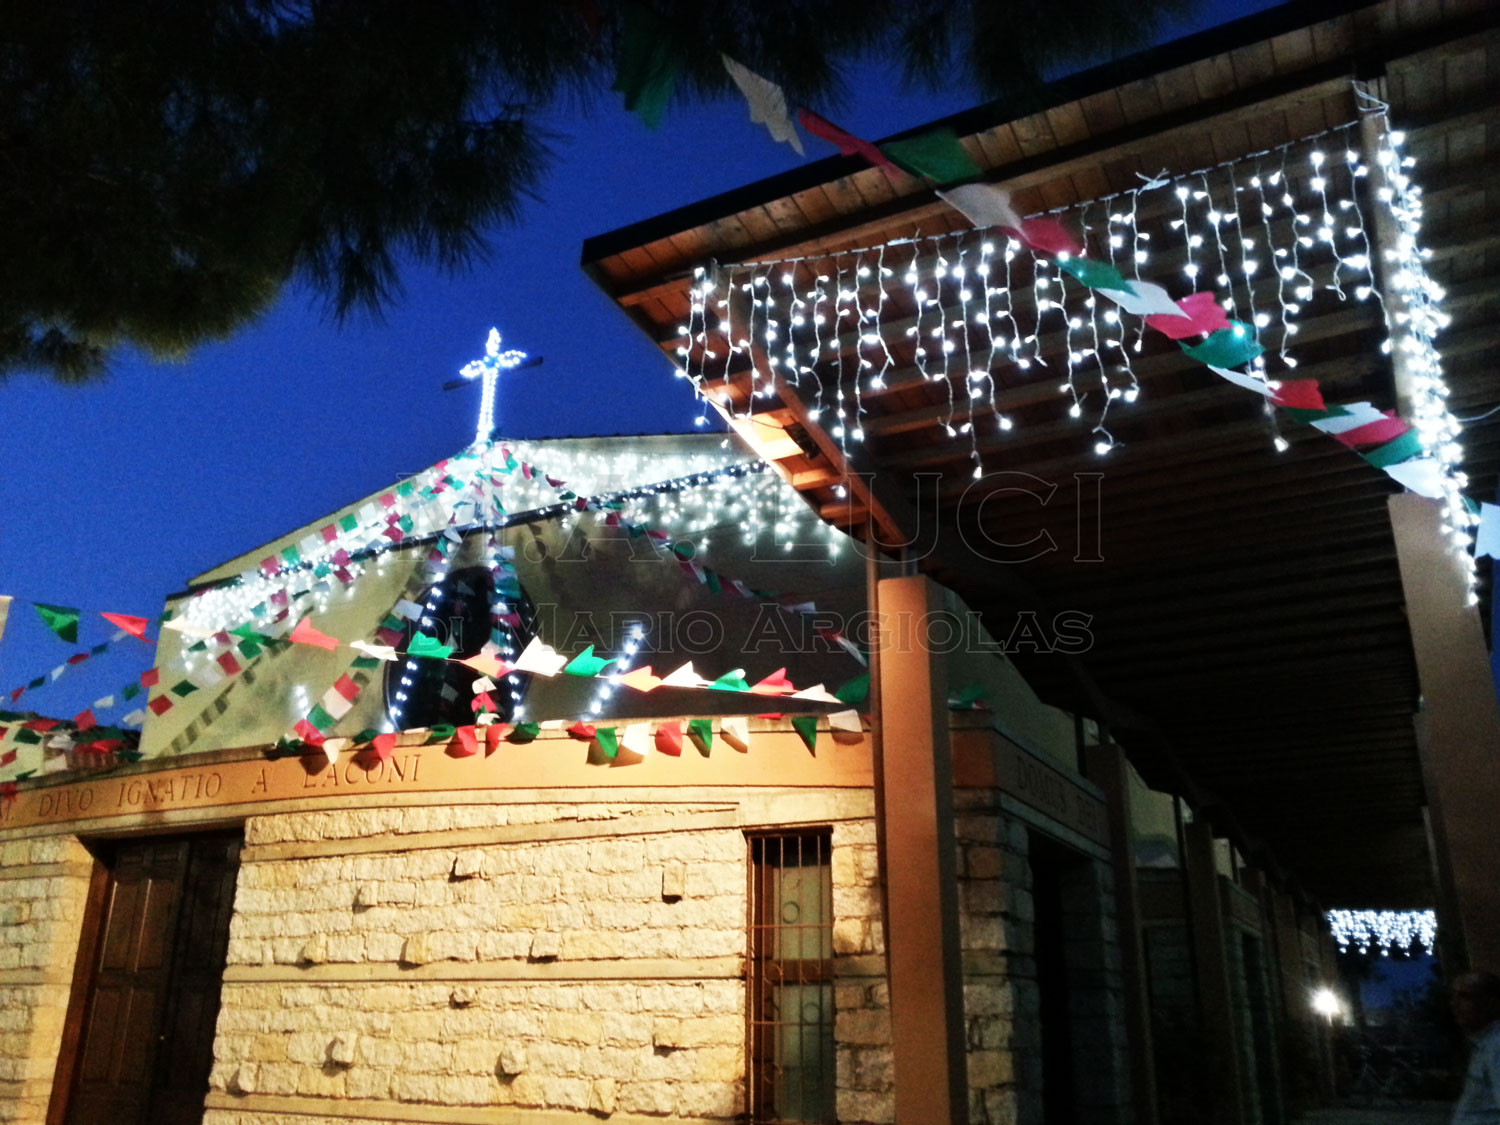 chiese_feste-patronali (25)